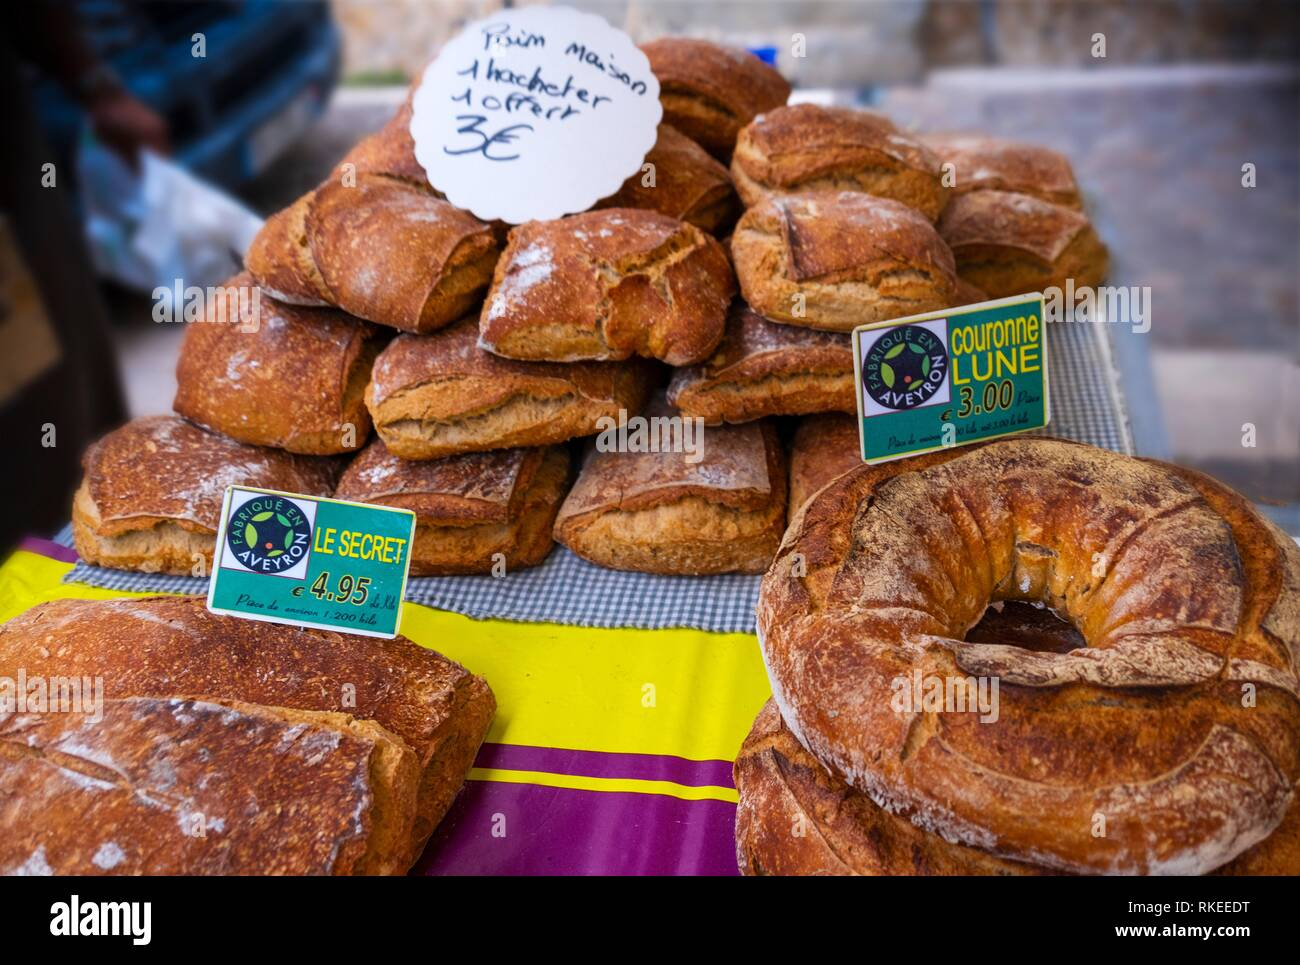 France, Auvergne, Cantal, on the thursday weekly market at Maur. - Stock Image